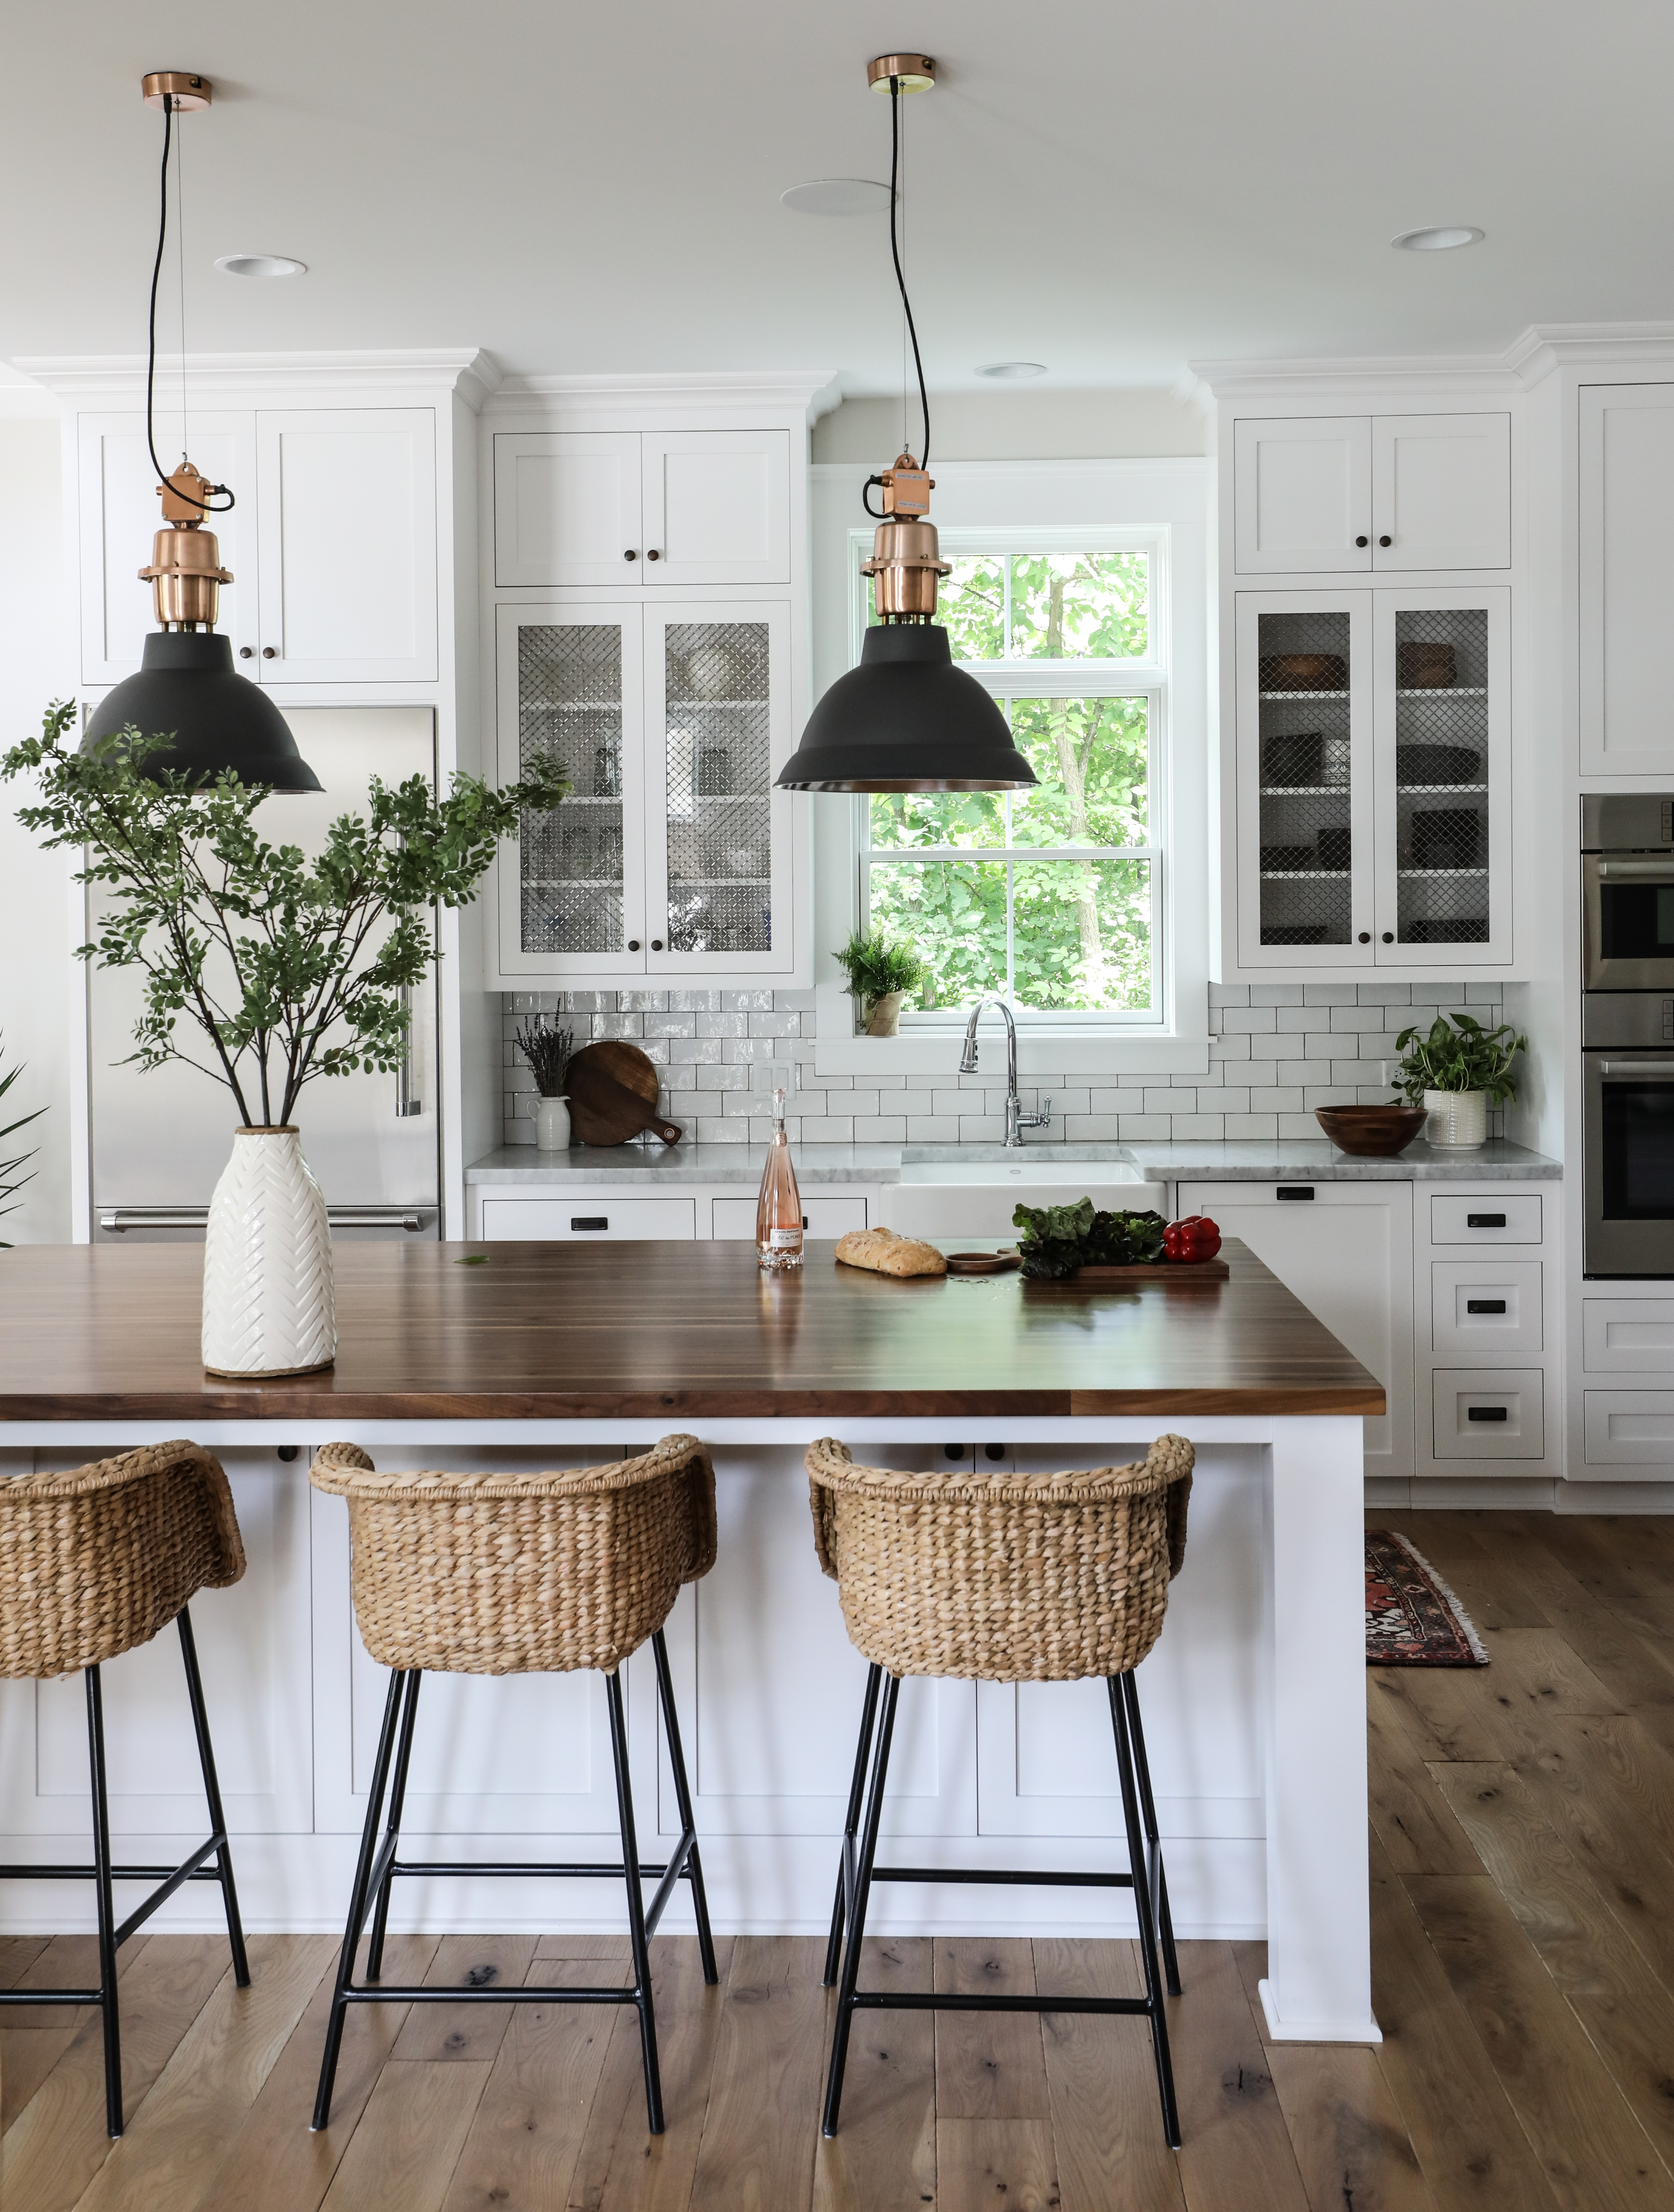 Kitchen Counter And Stools Elmhurst Farmhouse Kitchen Reveal Park And Oak Interior Design